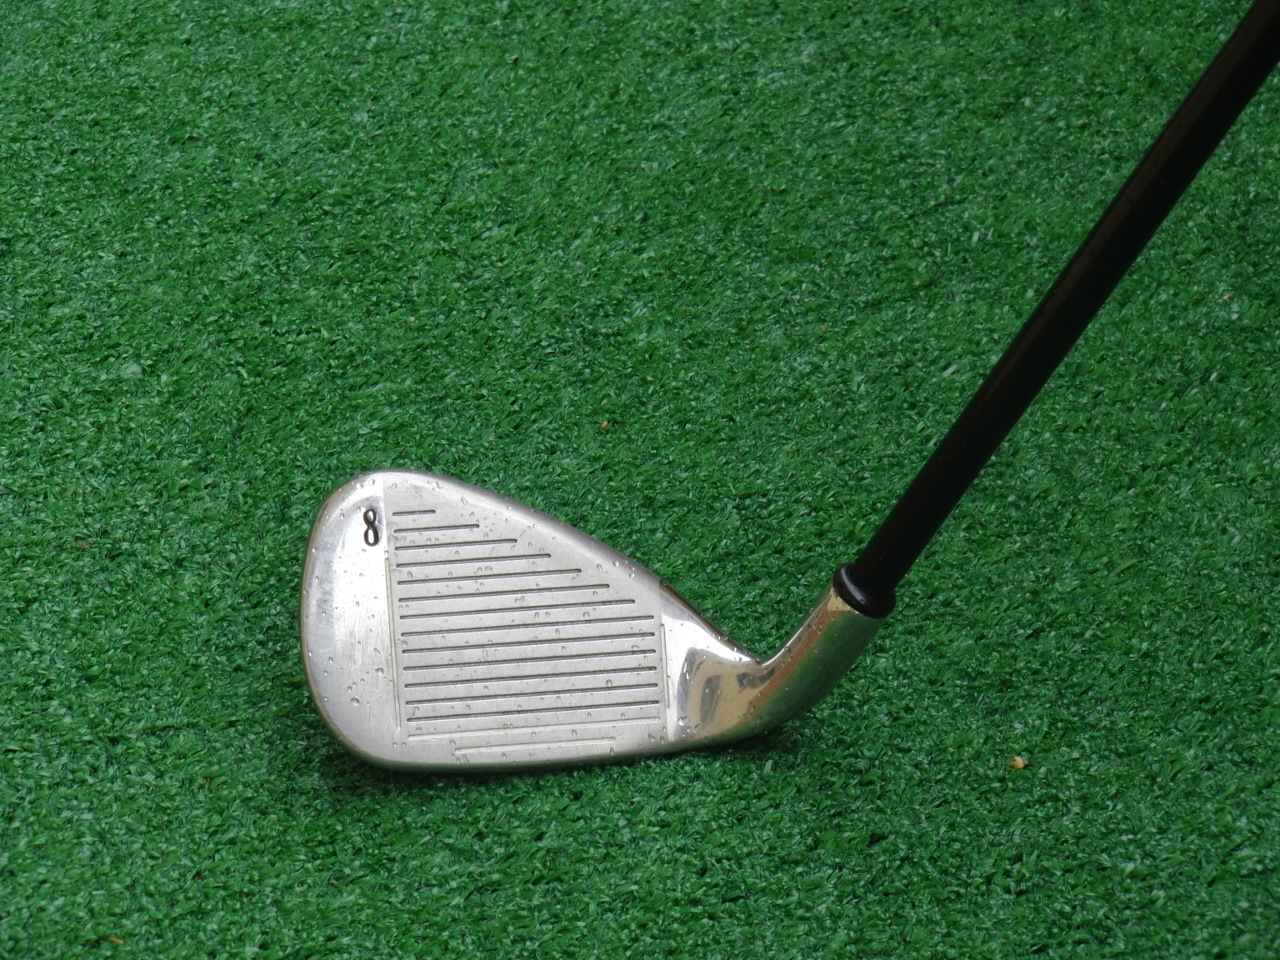 Golf club iron rack